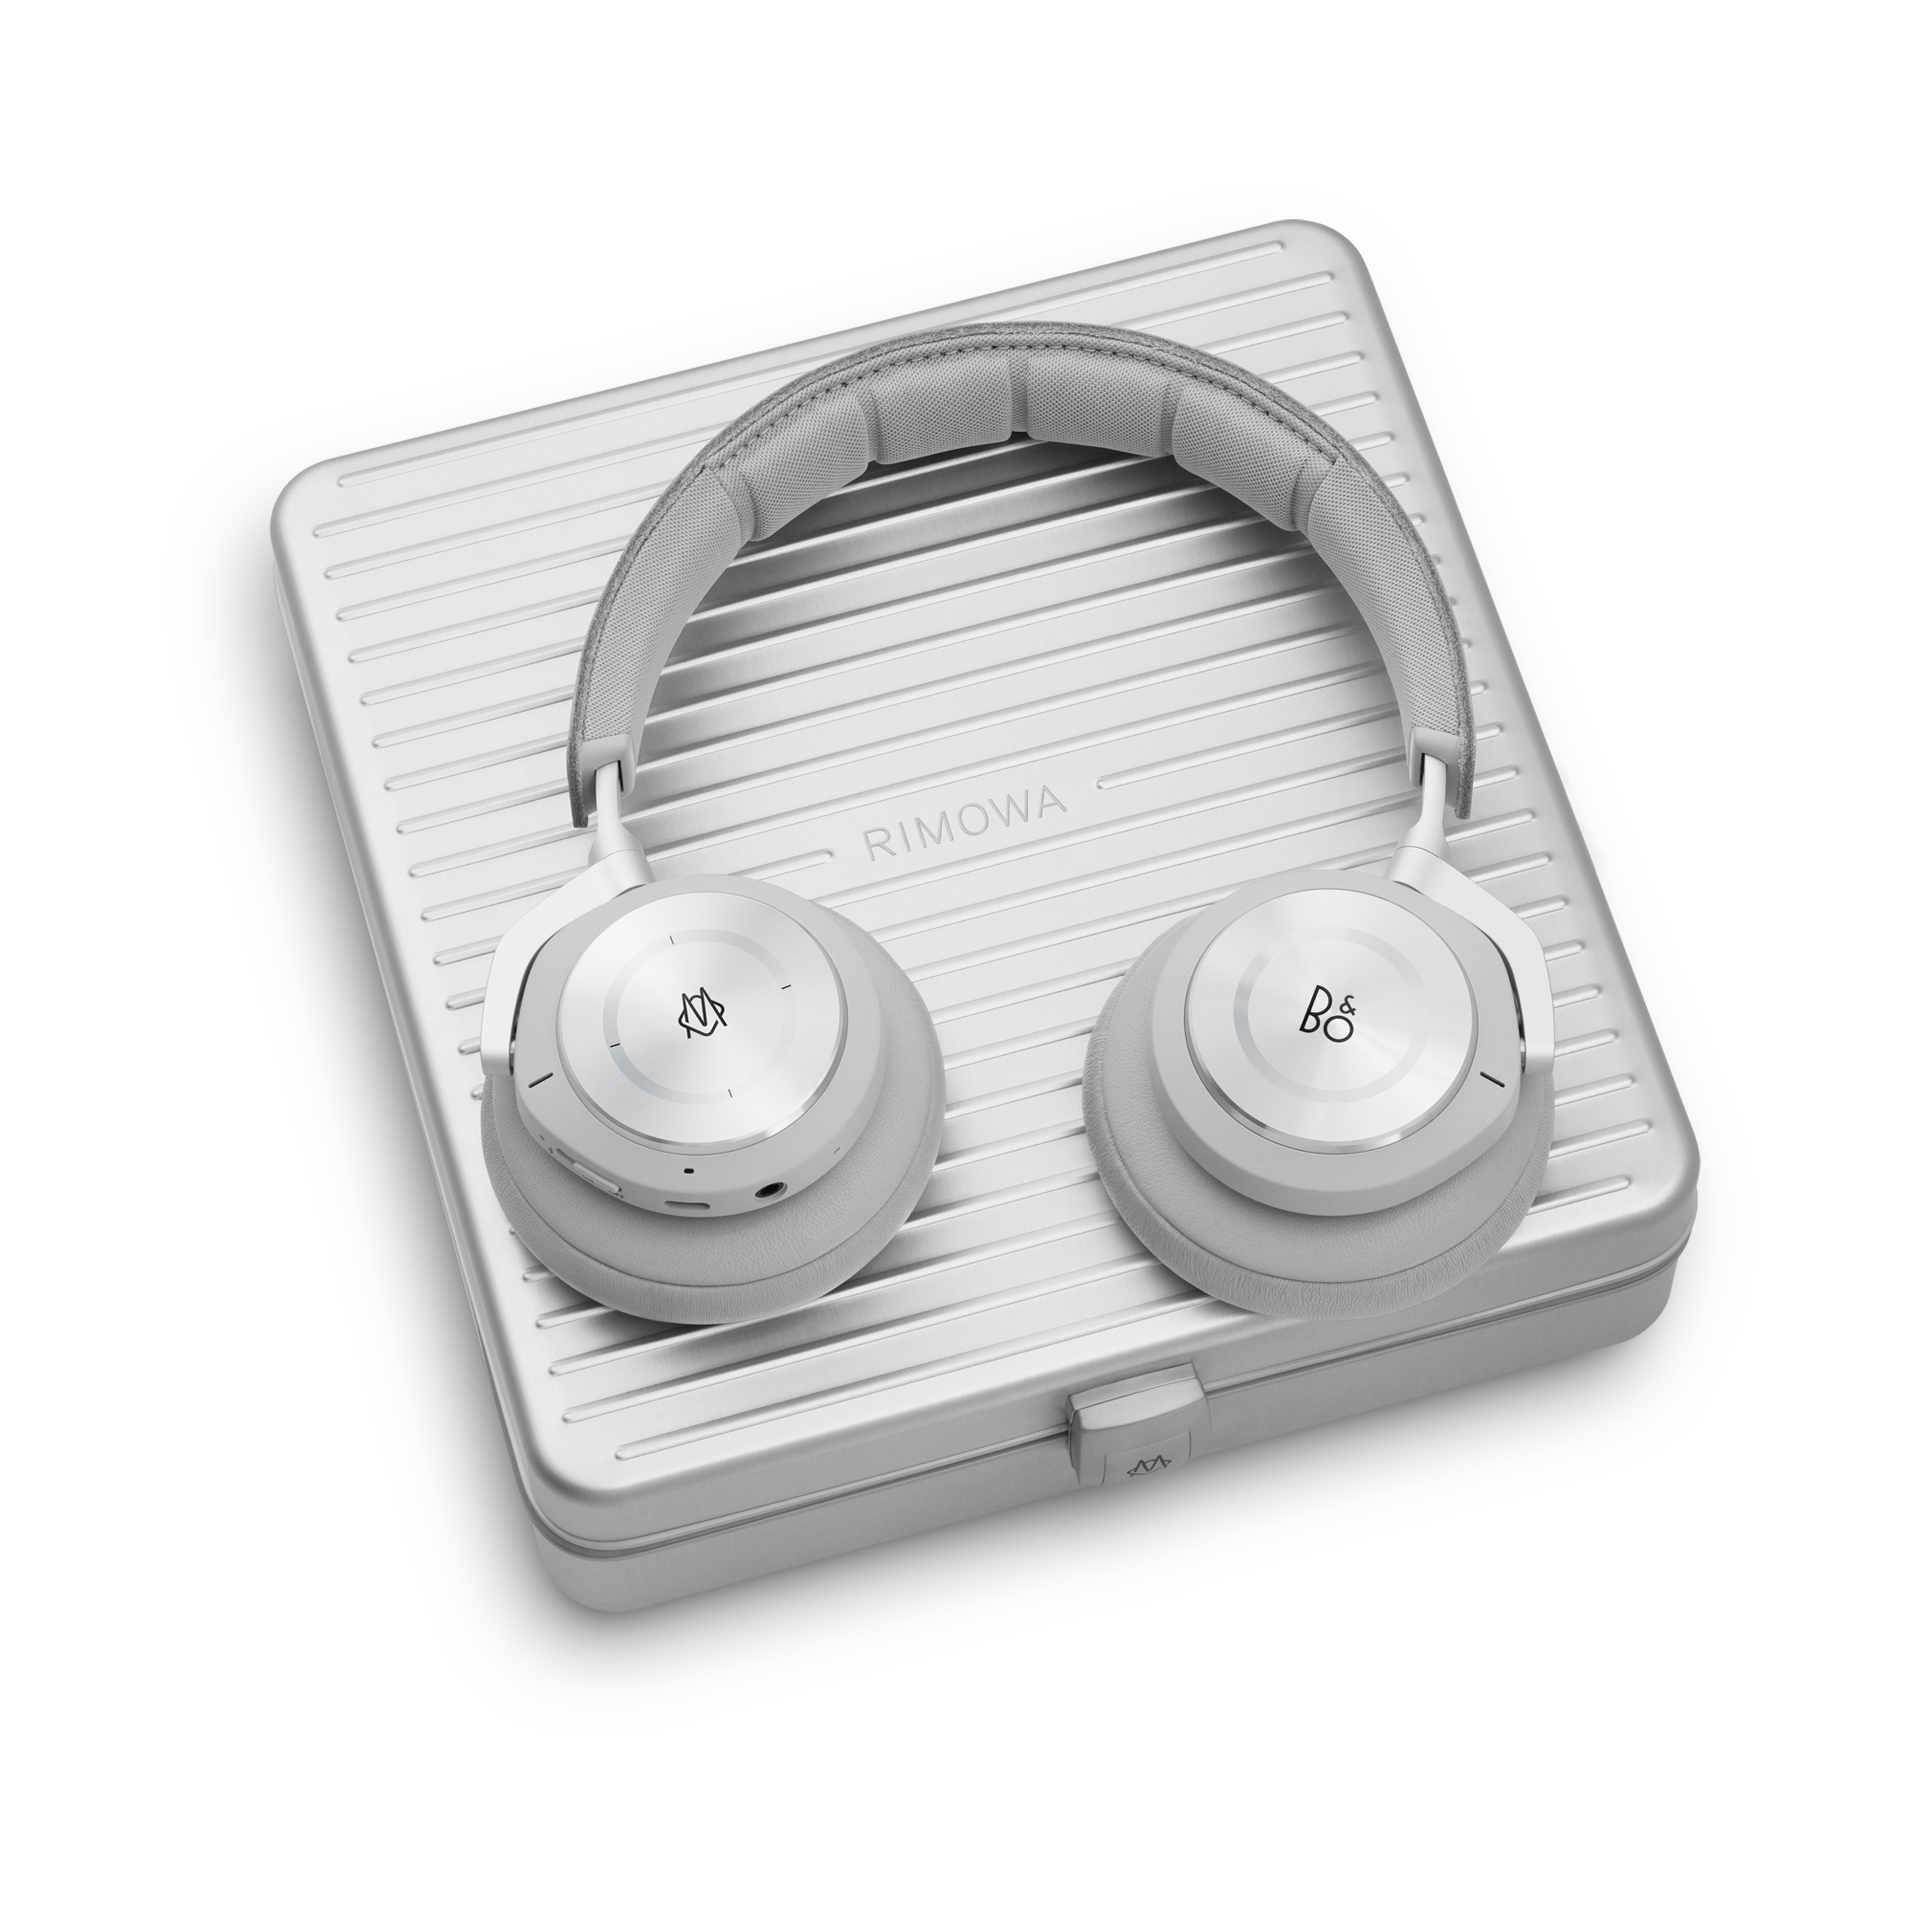 beoplay-h9i-rimowa-gallery4.png